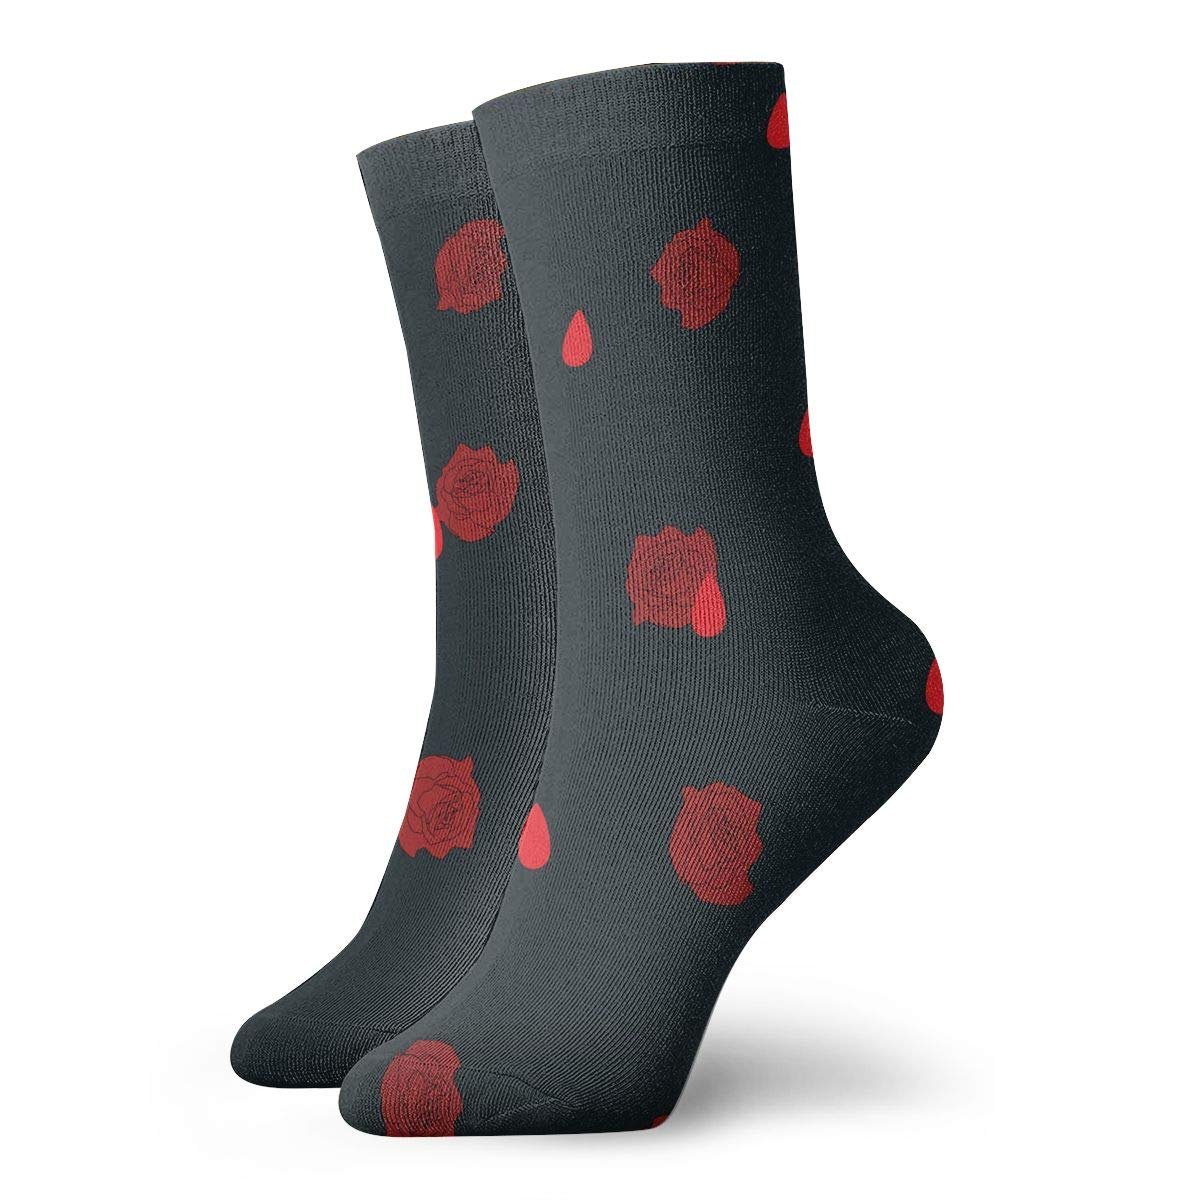 TAOMAP89 Flowers and Blood Drops Pattern Compression Ankle Socks for Women and Men Short Boot Socks Baseball Best for Soccer Athletic